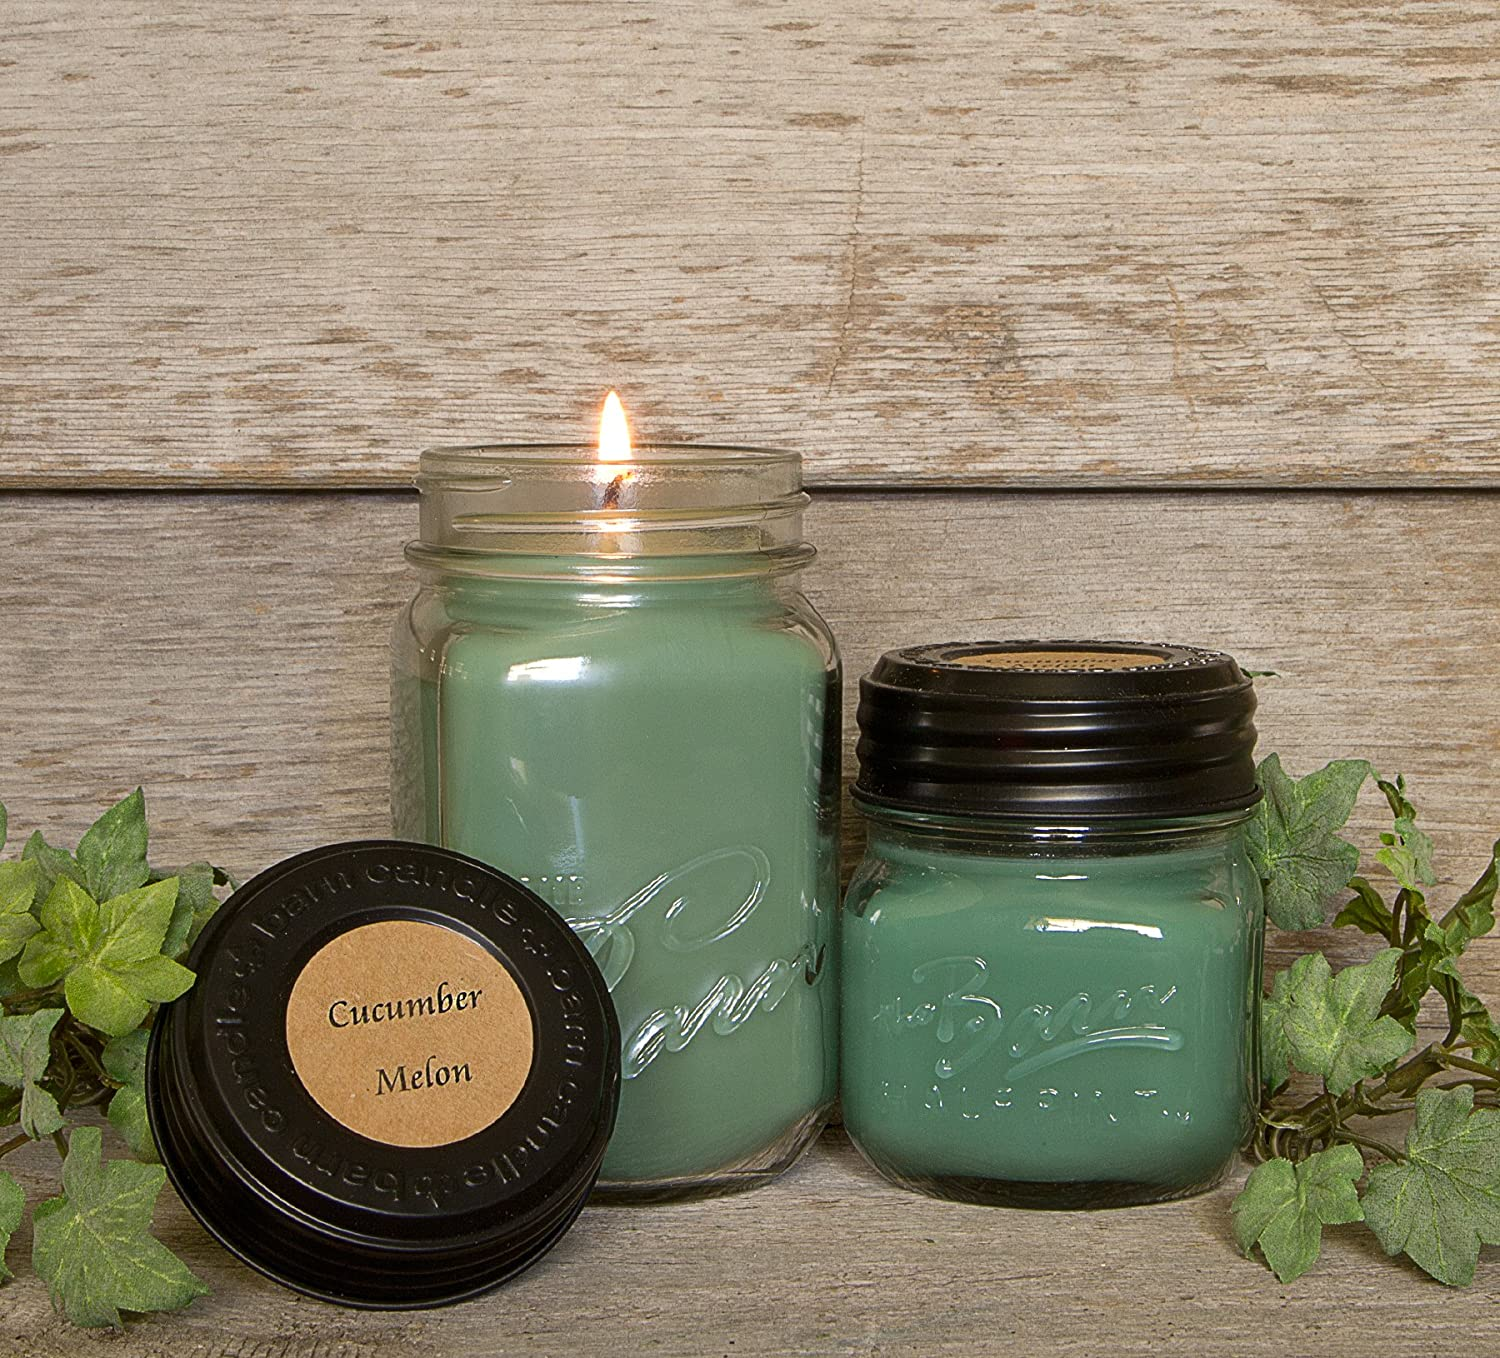 The Barn Candle Company Eco Friendly, Hand Poured, Soy Blend Wax Cucumber Melon 8 Oz. Candle